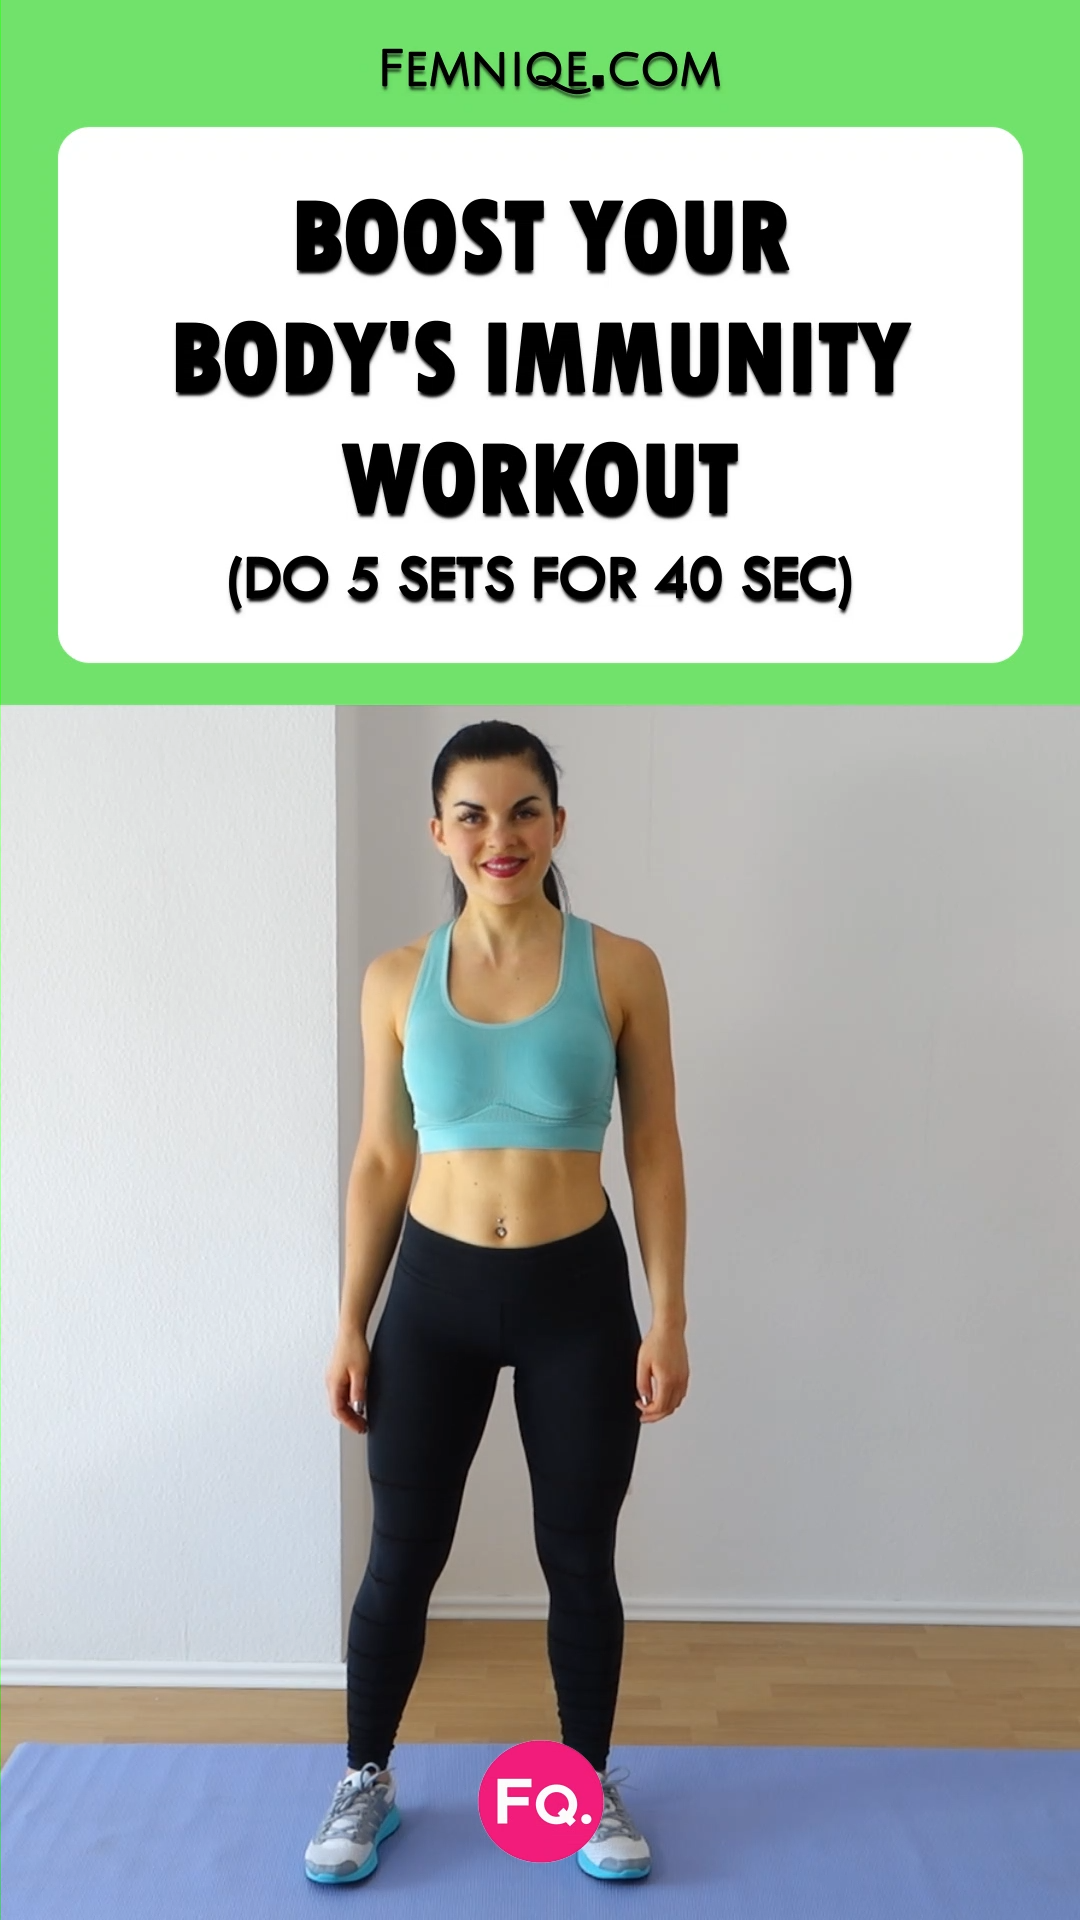 Exercise is scientifically proven to help boost your immune system. Add this quick workout to your m...